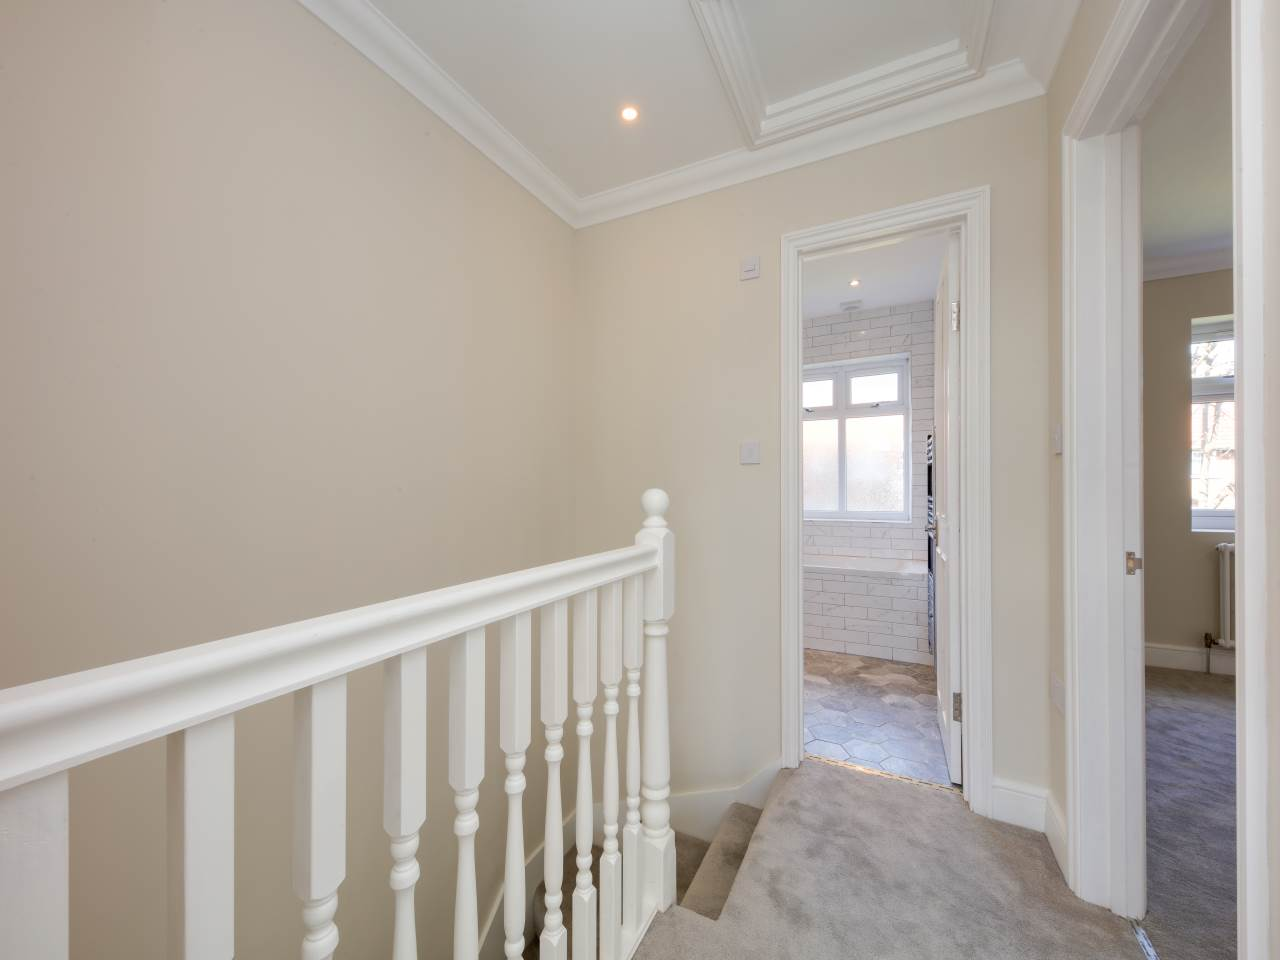 3 bed house for sale in Shernhall Street , Walthamstow   - Property Image 9